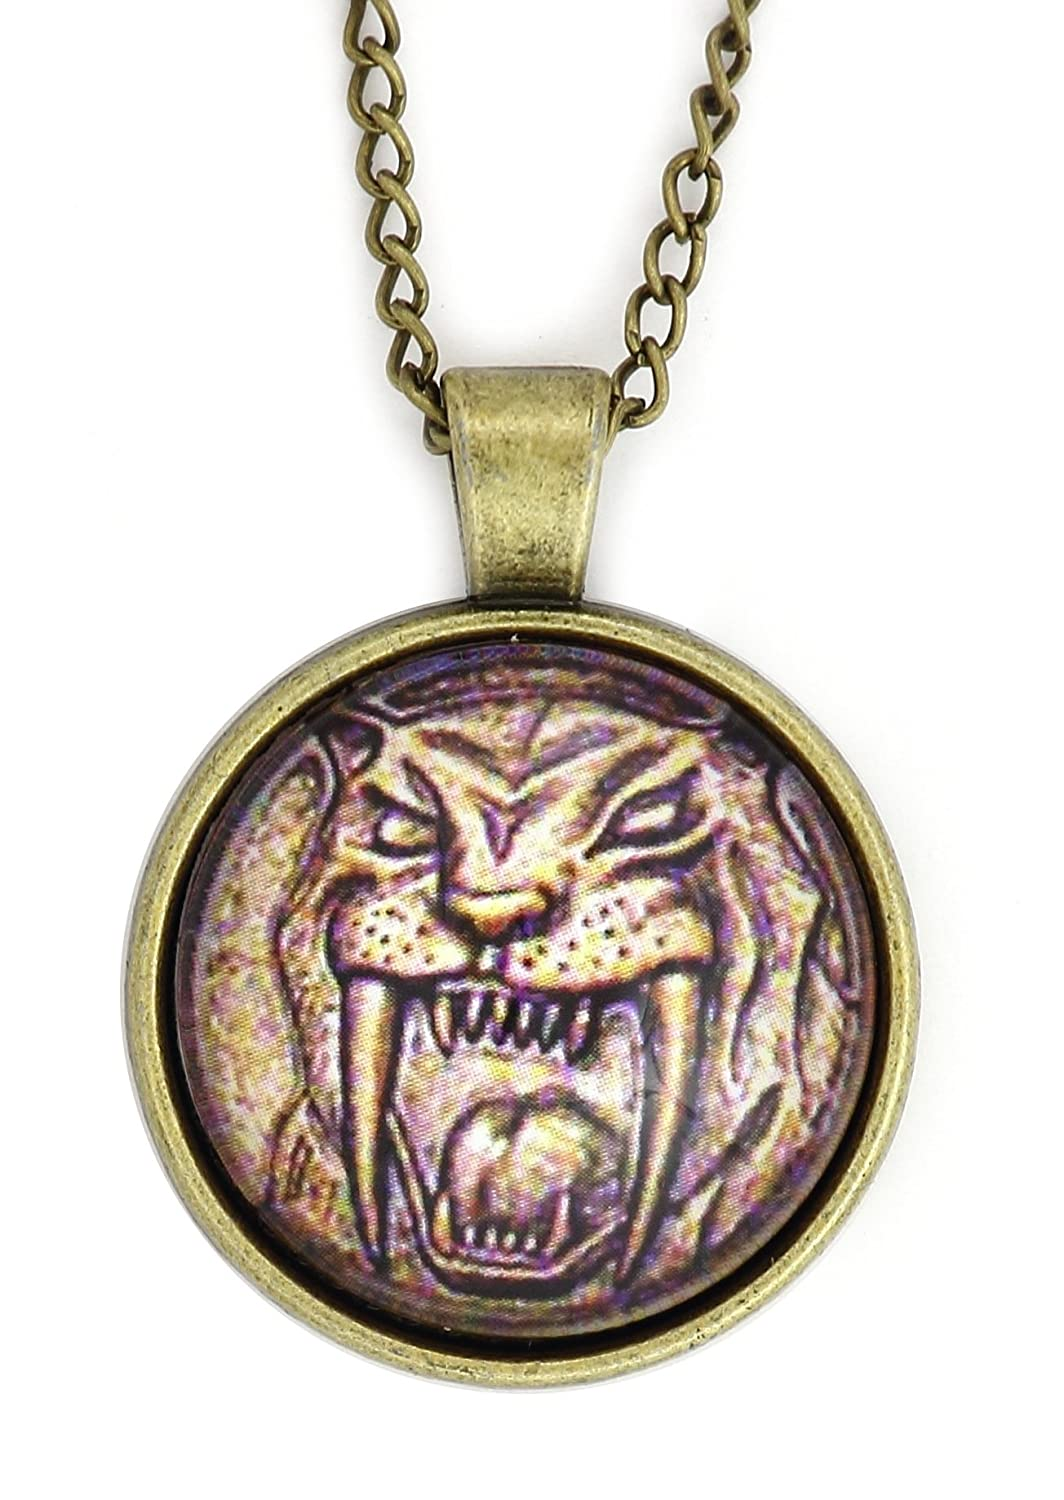 Amazon.com: Sabretooth tigre Dino moneda collar de oro tono ...